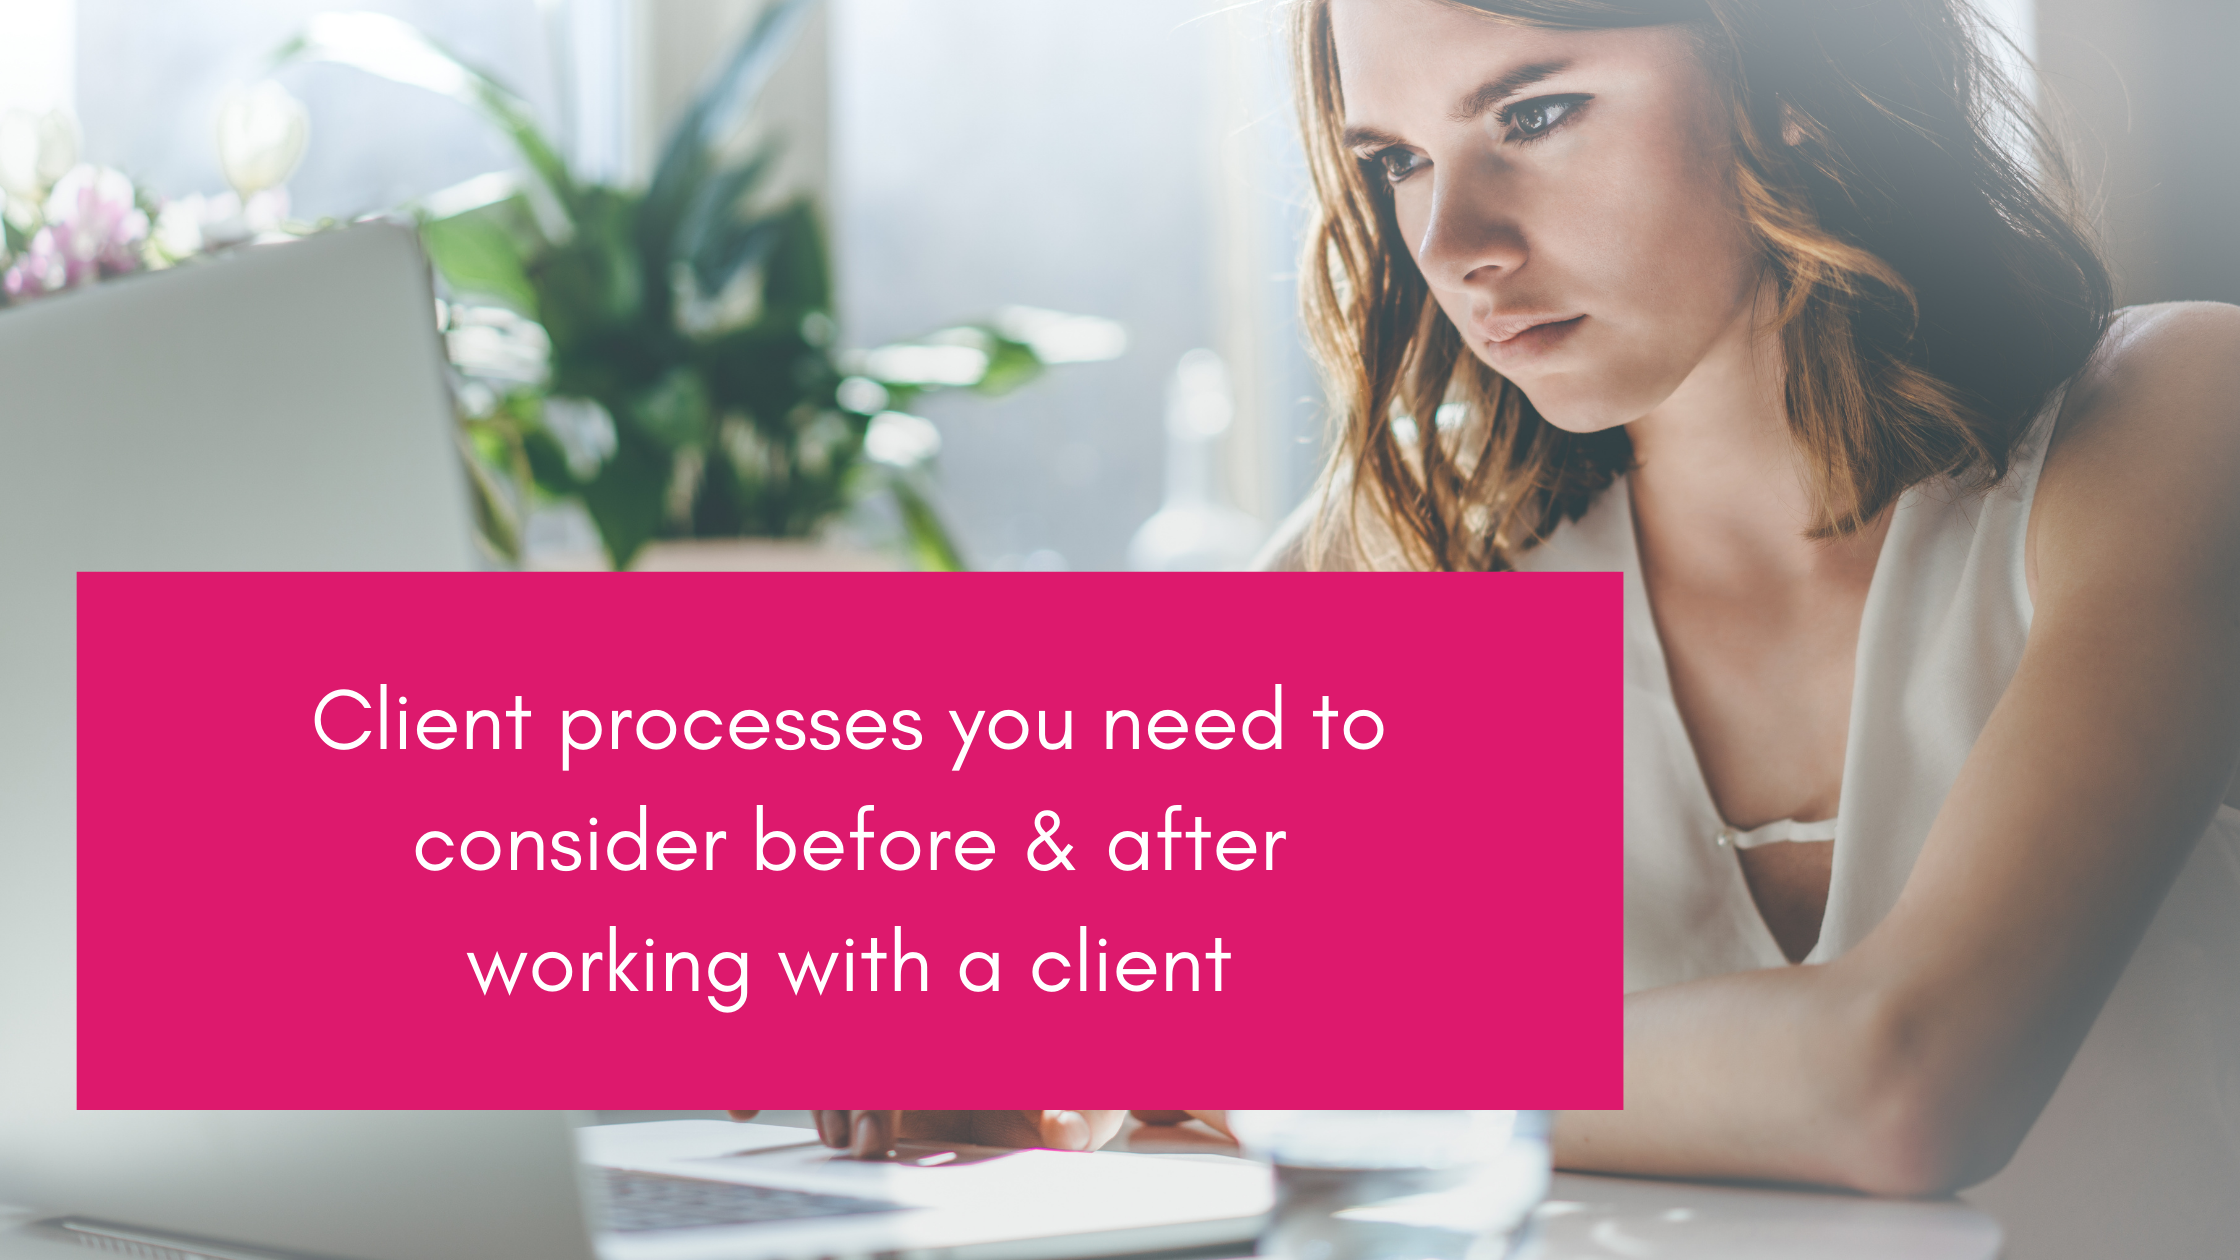 Client processes you need to consider before & after working with a client